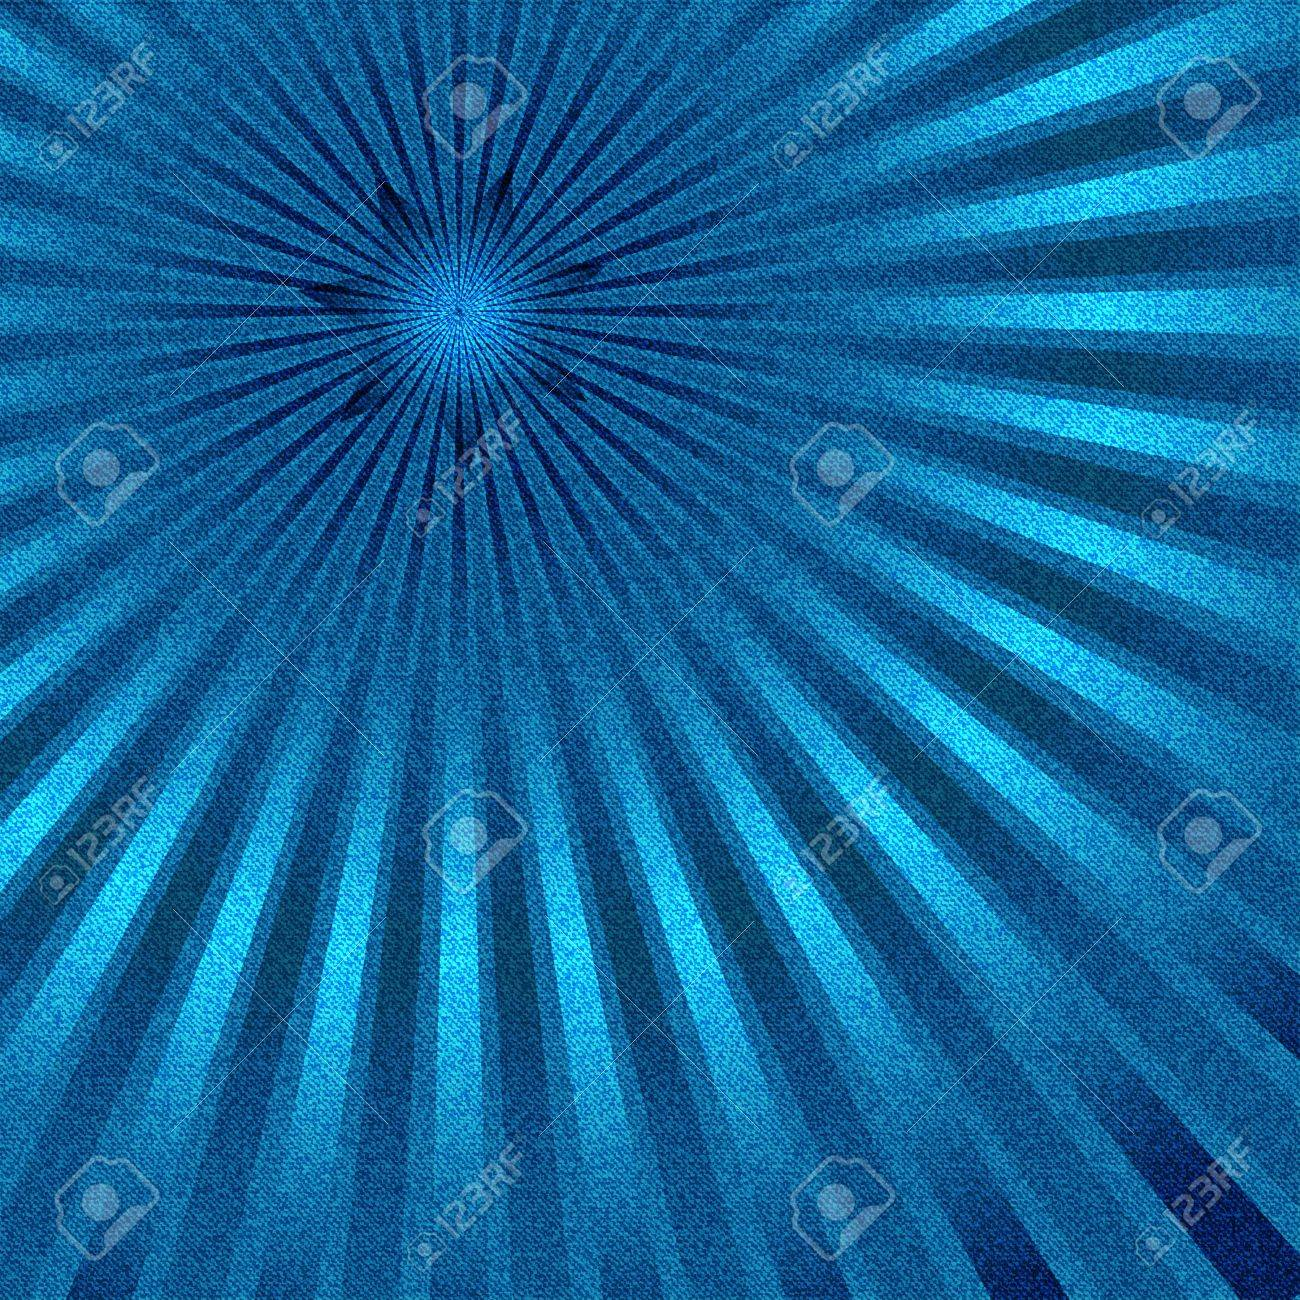 Background image 800x800 - Jeans Texture Background With Rays And Star Best For Jeans Is Upsizing To 800x800 Pixel